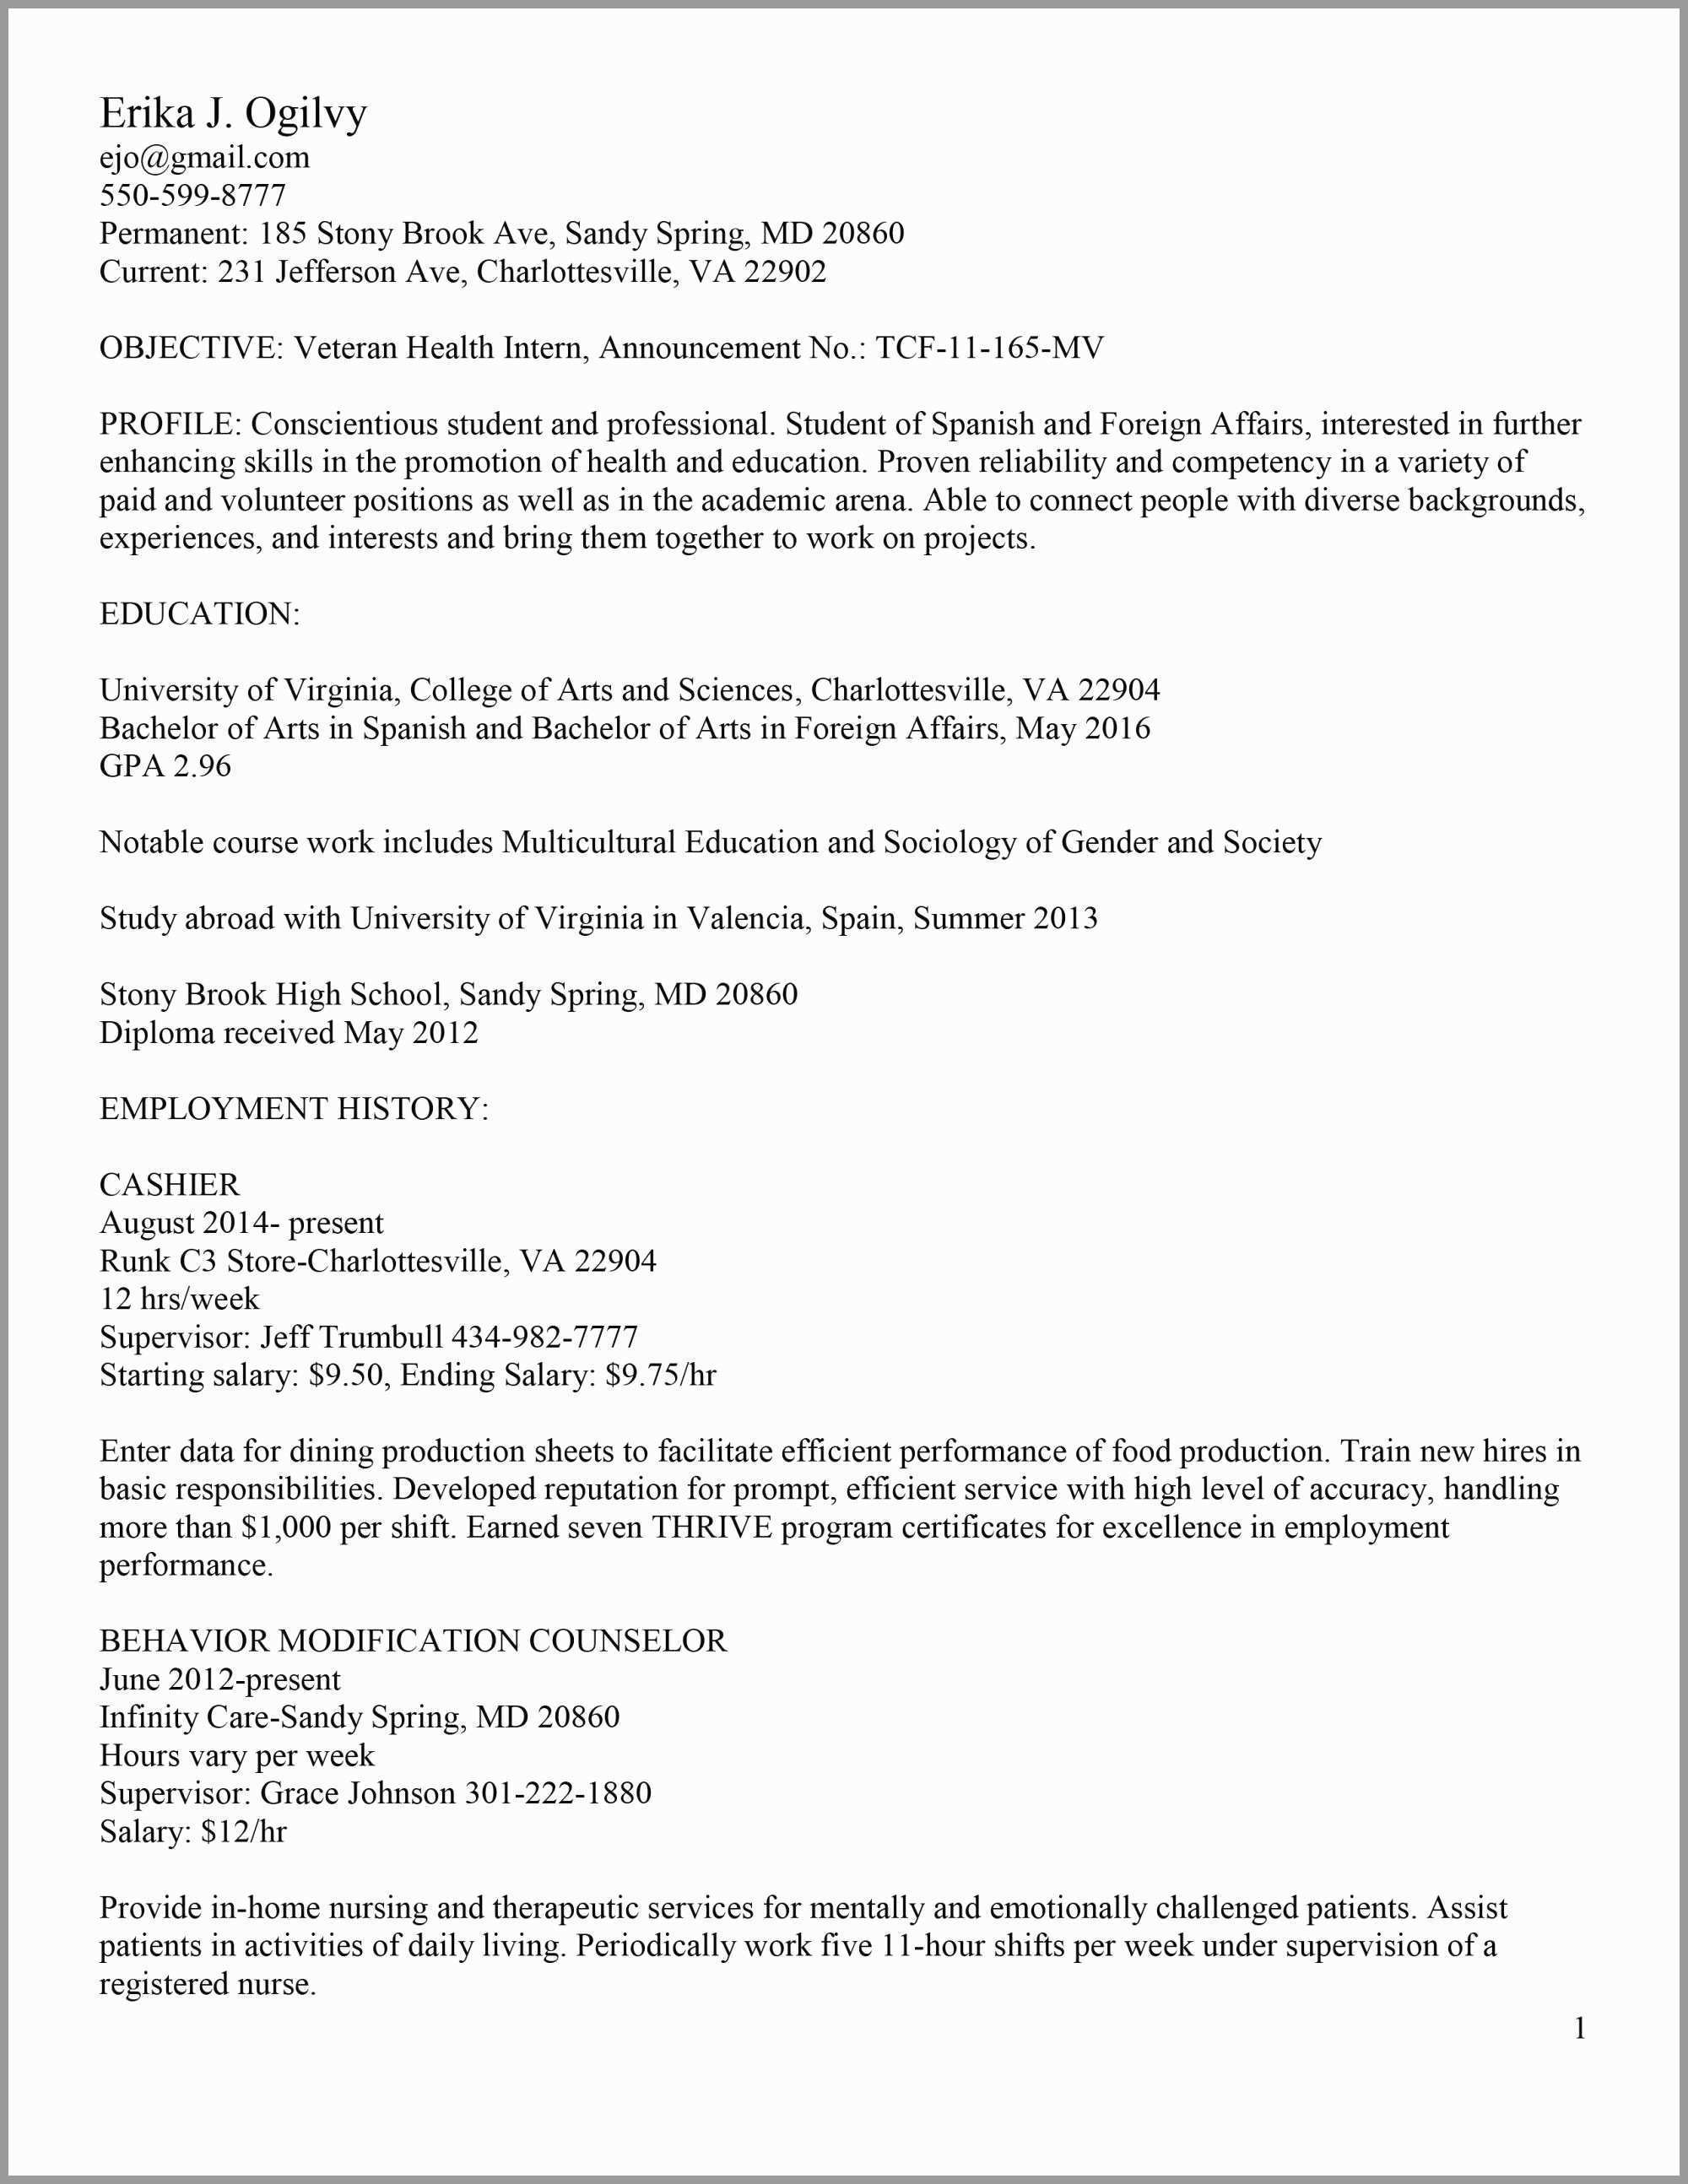 Theatre Tech Resume Template - Professional theatre Resume Template Cute Tech theatre Resume